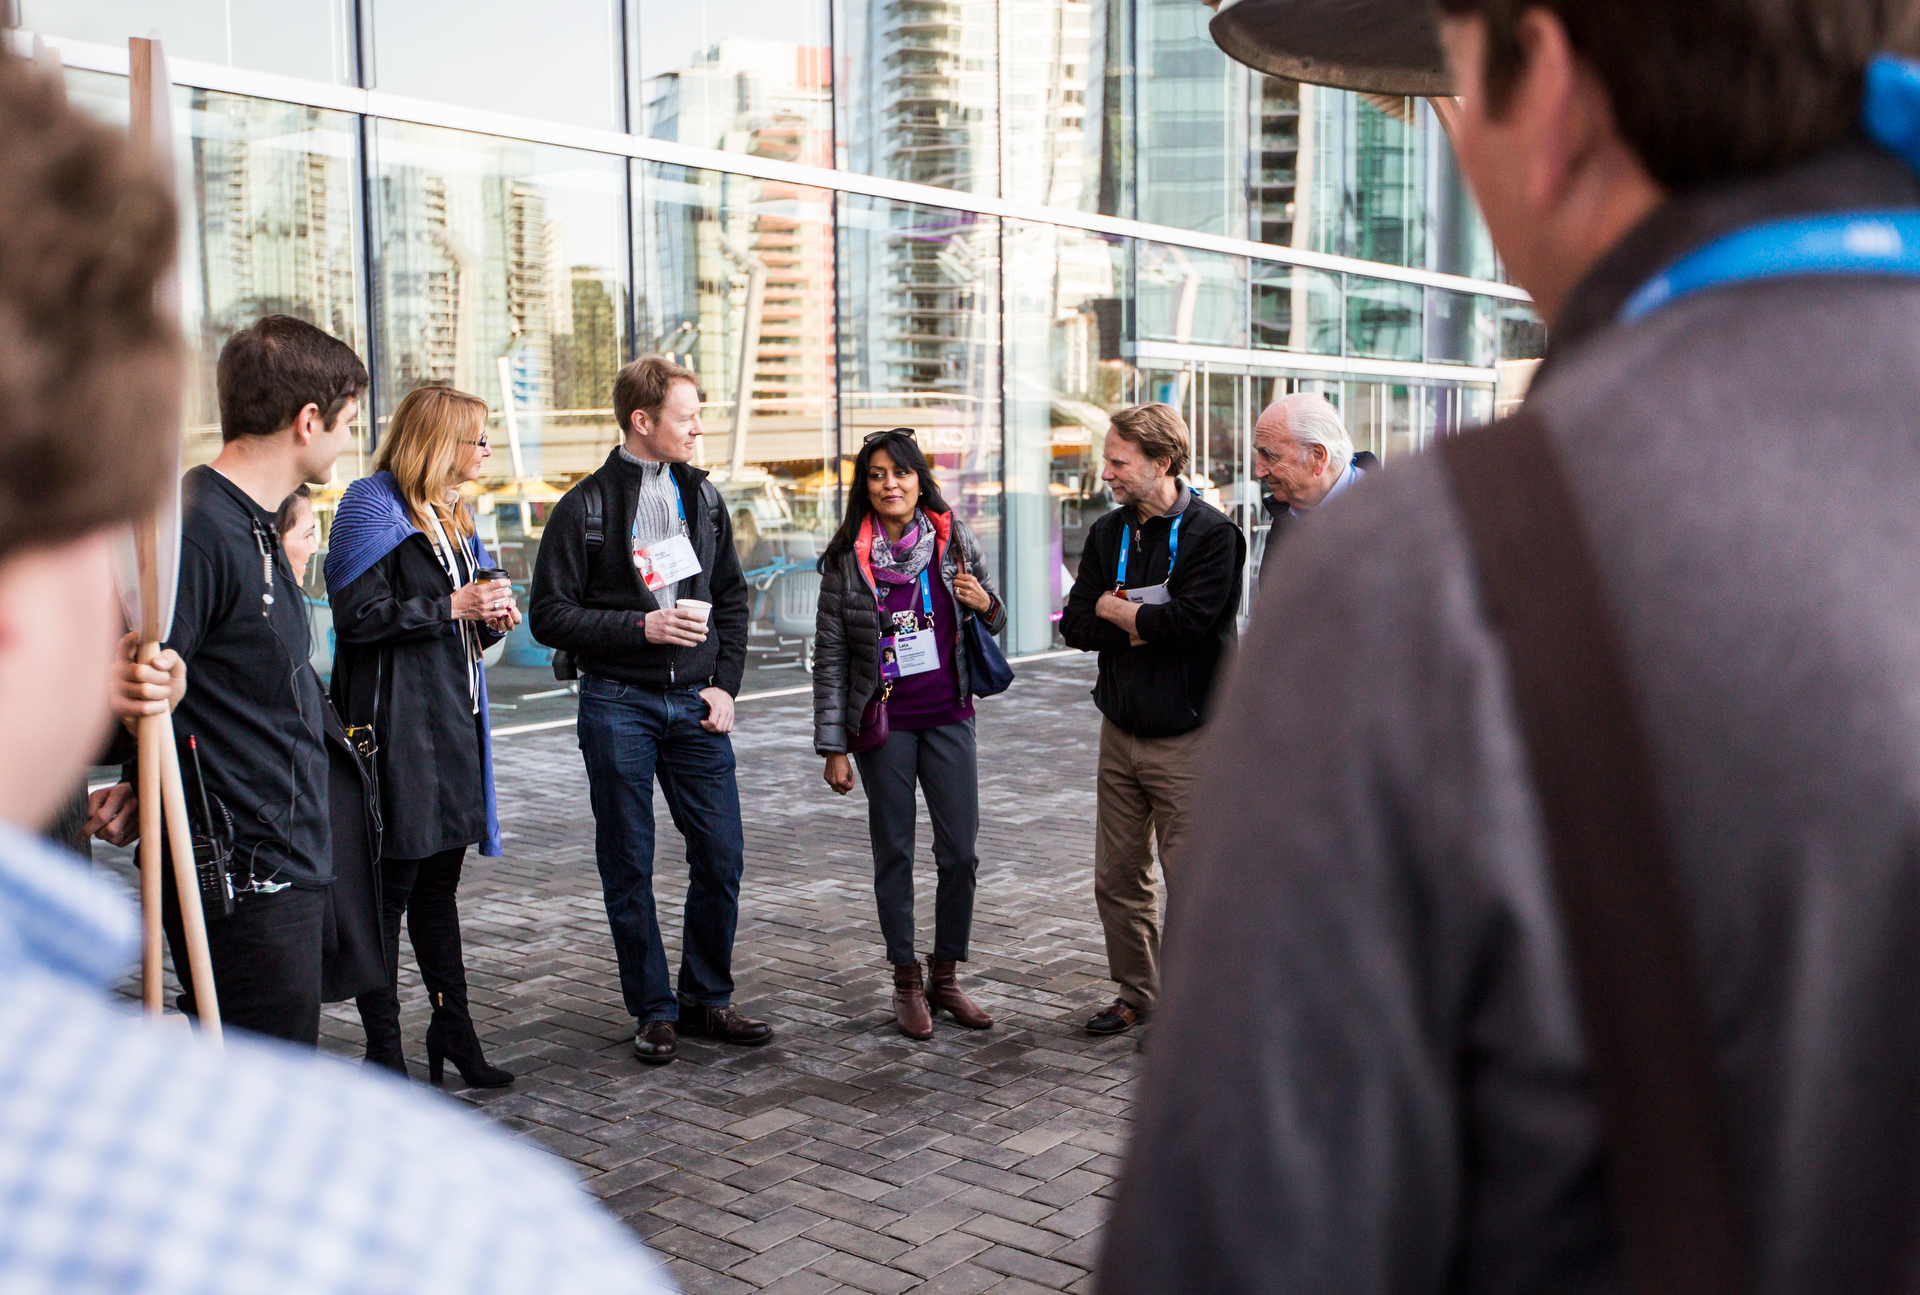 """At a """"speed meeting"""" session, TED2015 attendees get to know each other. Photo: Ryan Lash/TED"""